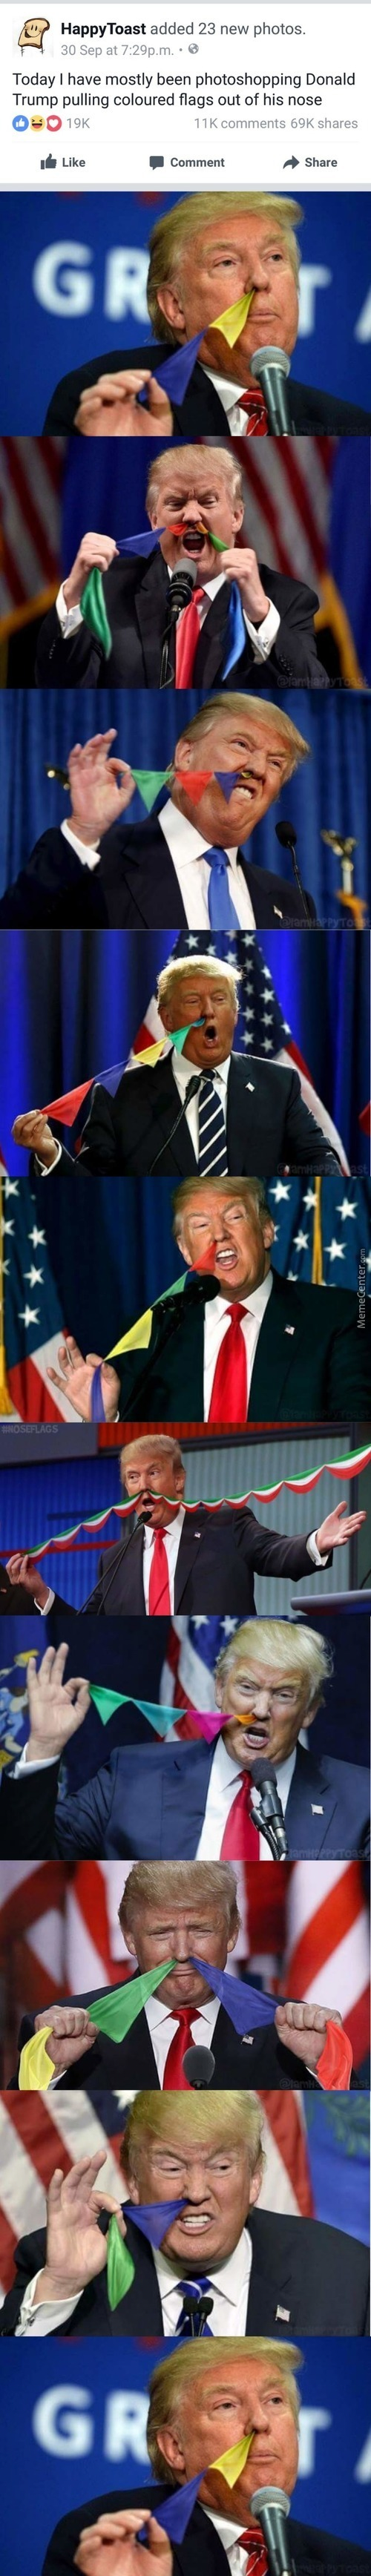 Trump Pulling Colored Flags Out Of His Nose